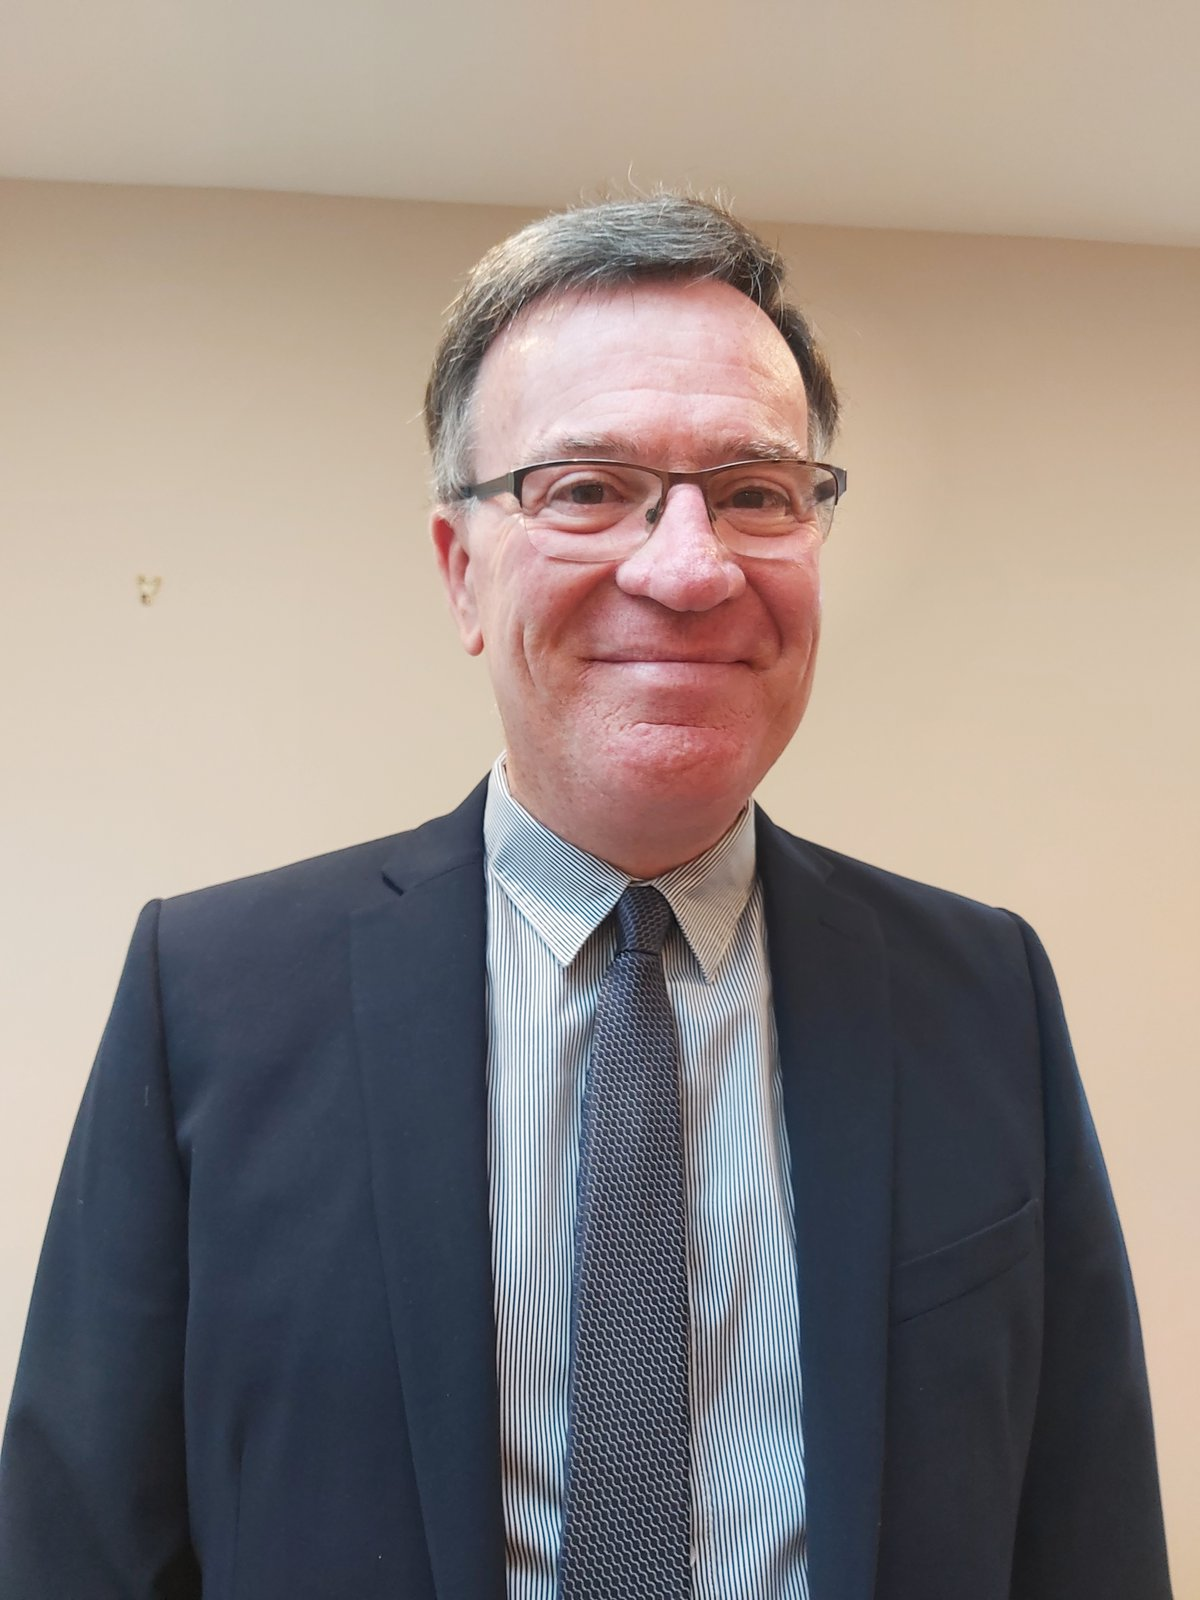 Andrew Ricketts, Director of Education and Young People